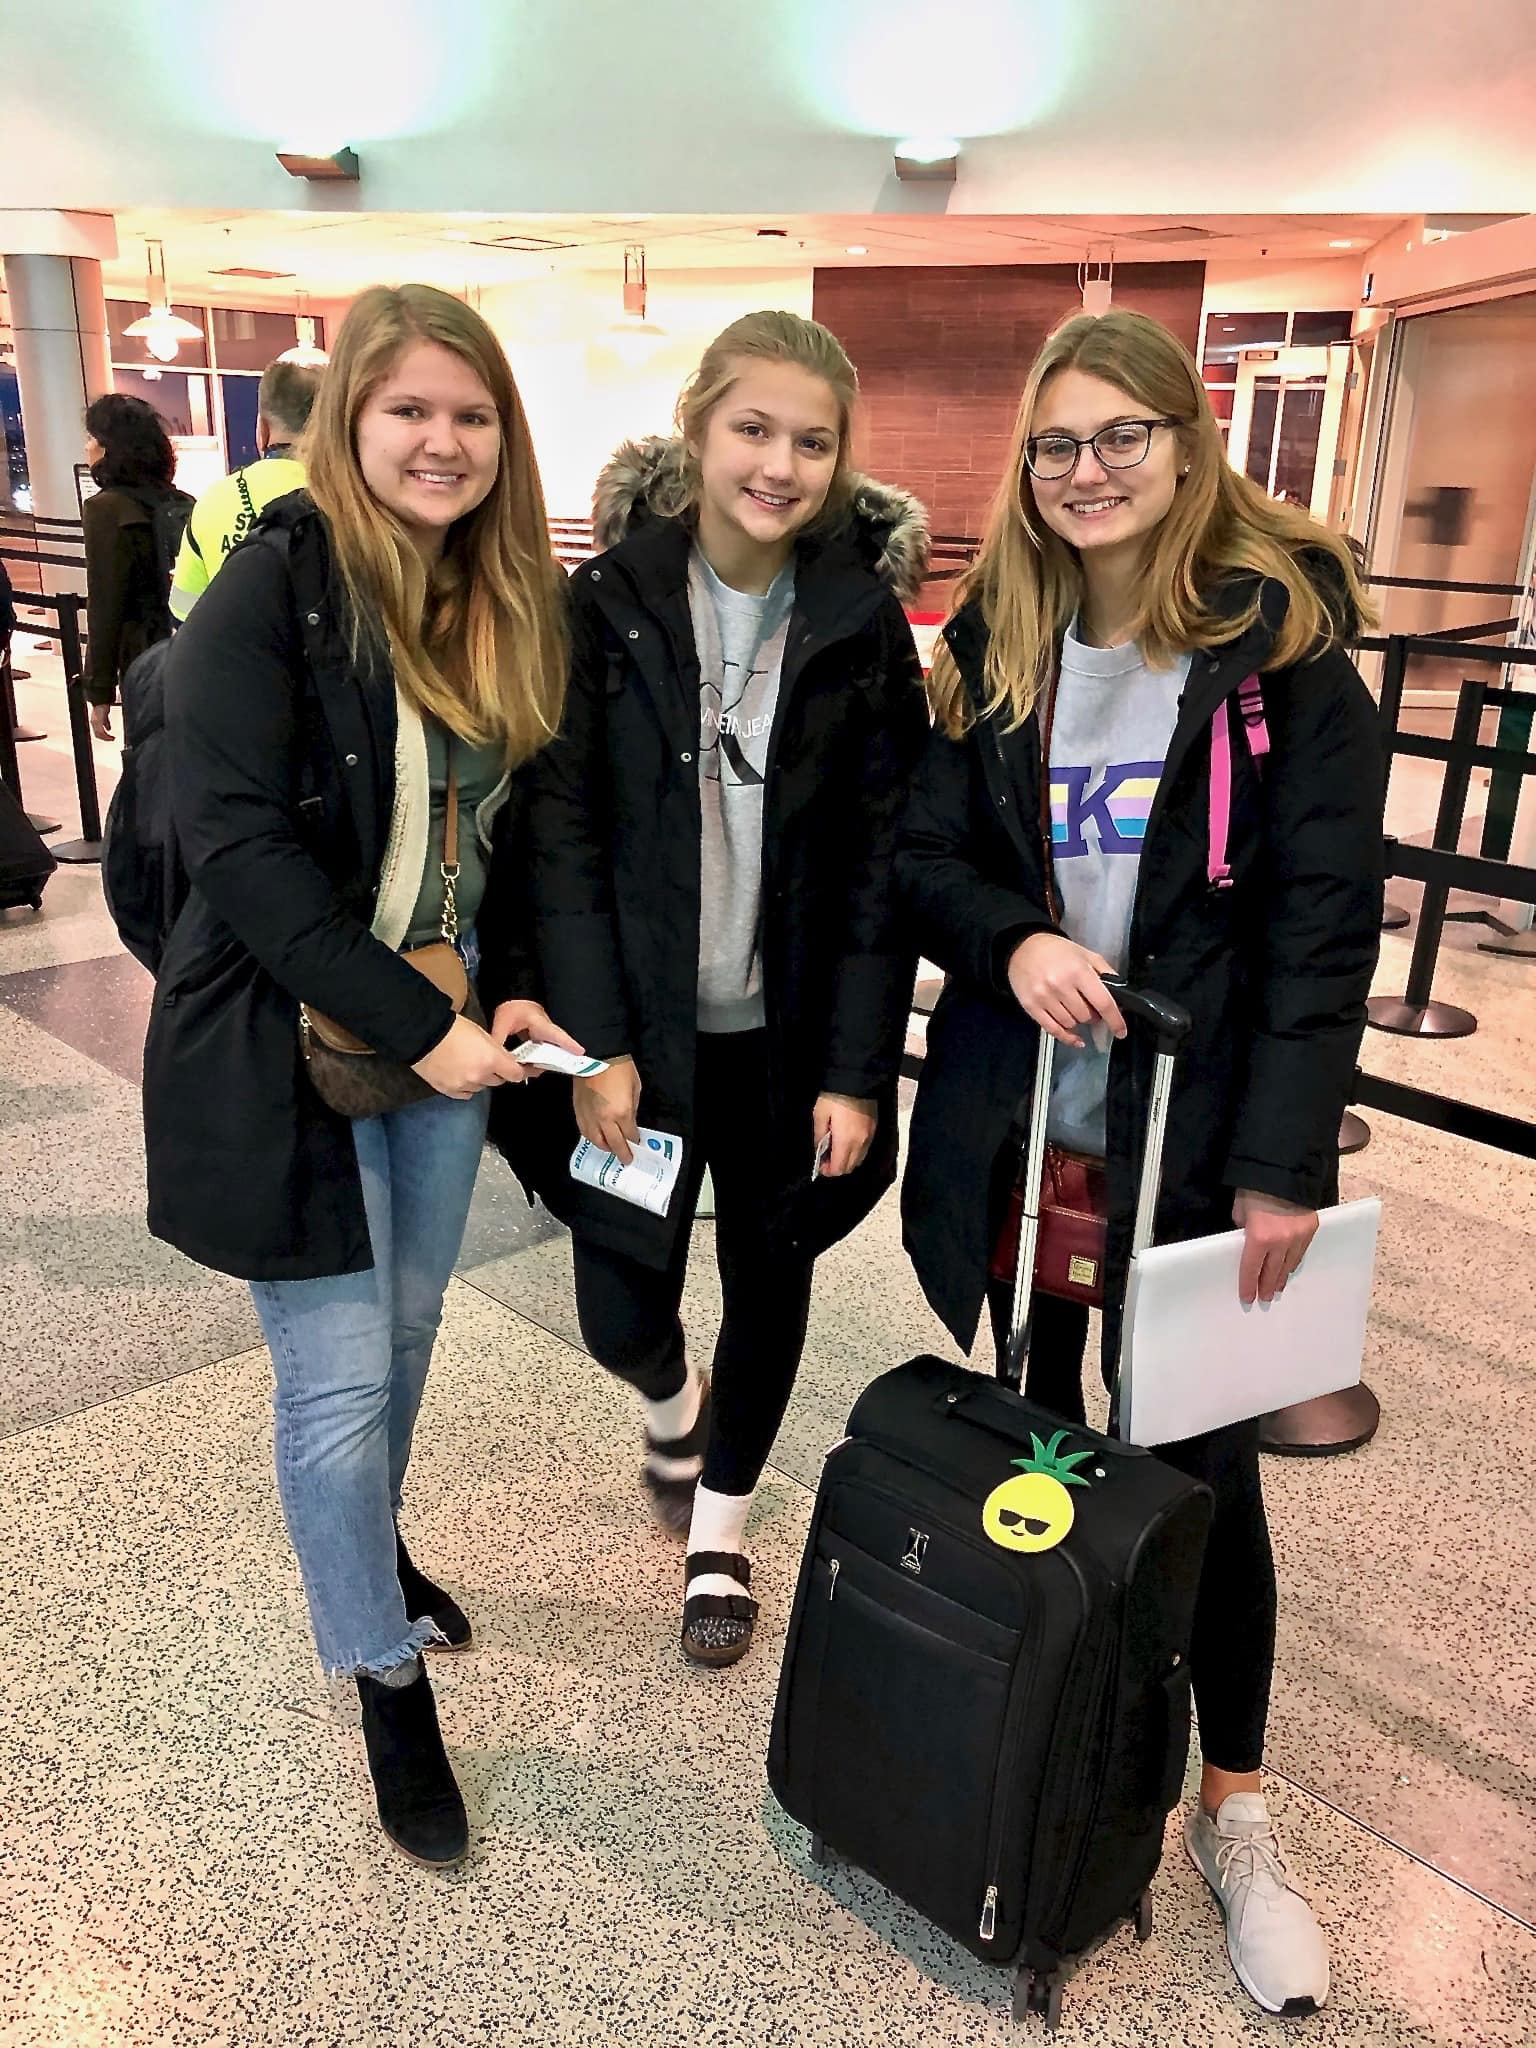 Cara, Cayla and Chelsea at the airport